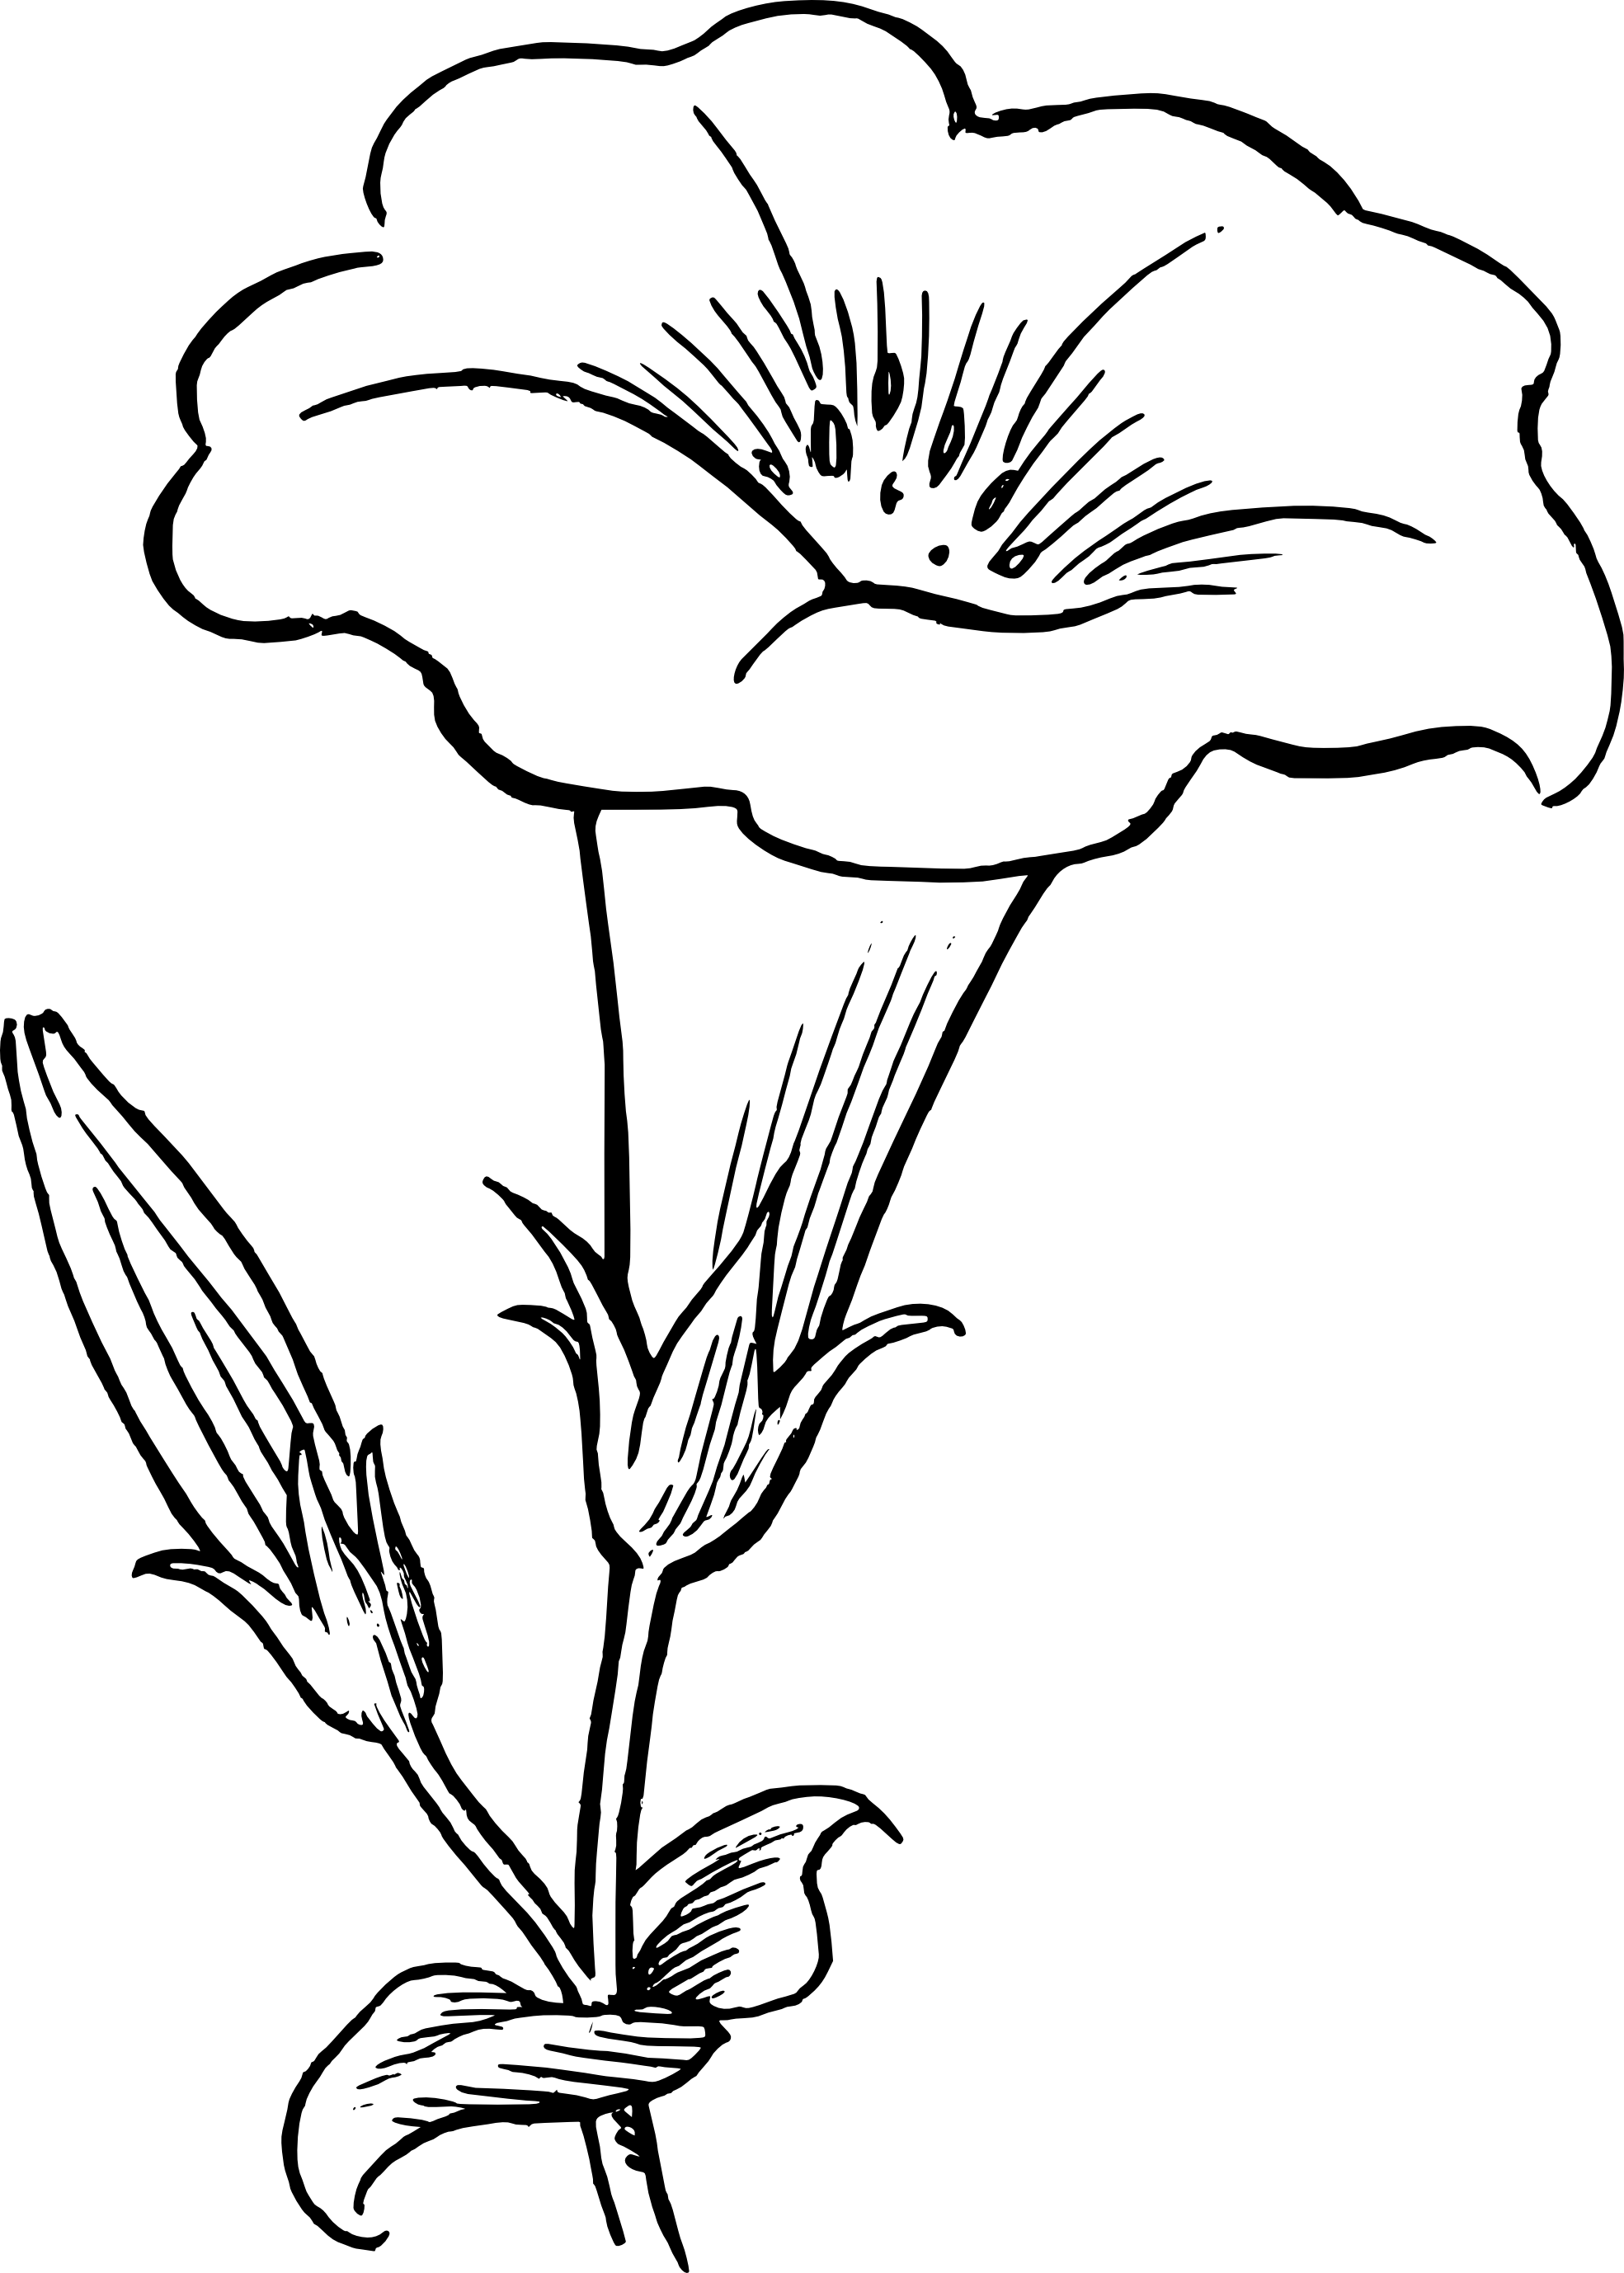 Flower In Line Drawing : Line drawings flower clipart best